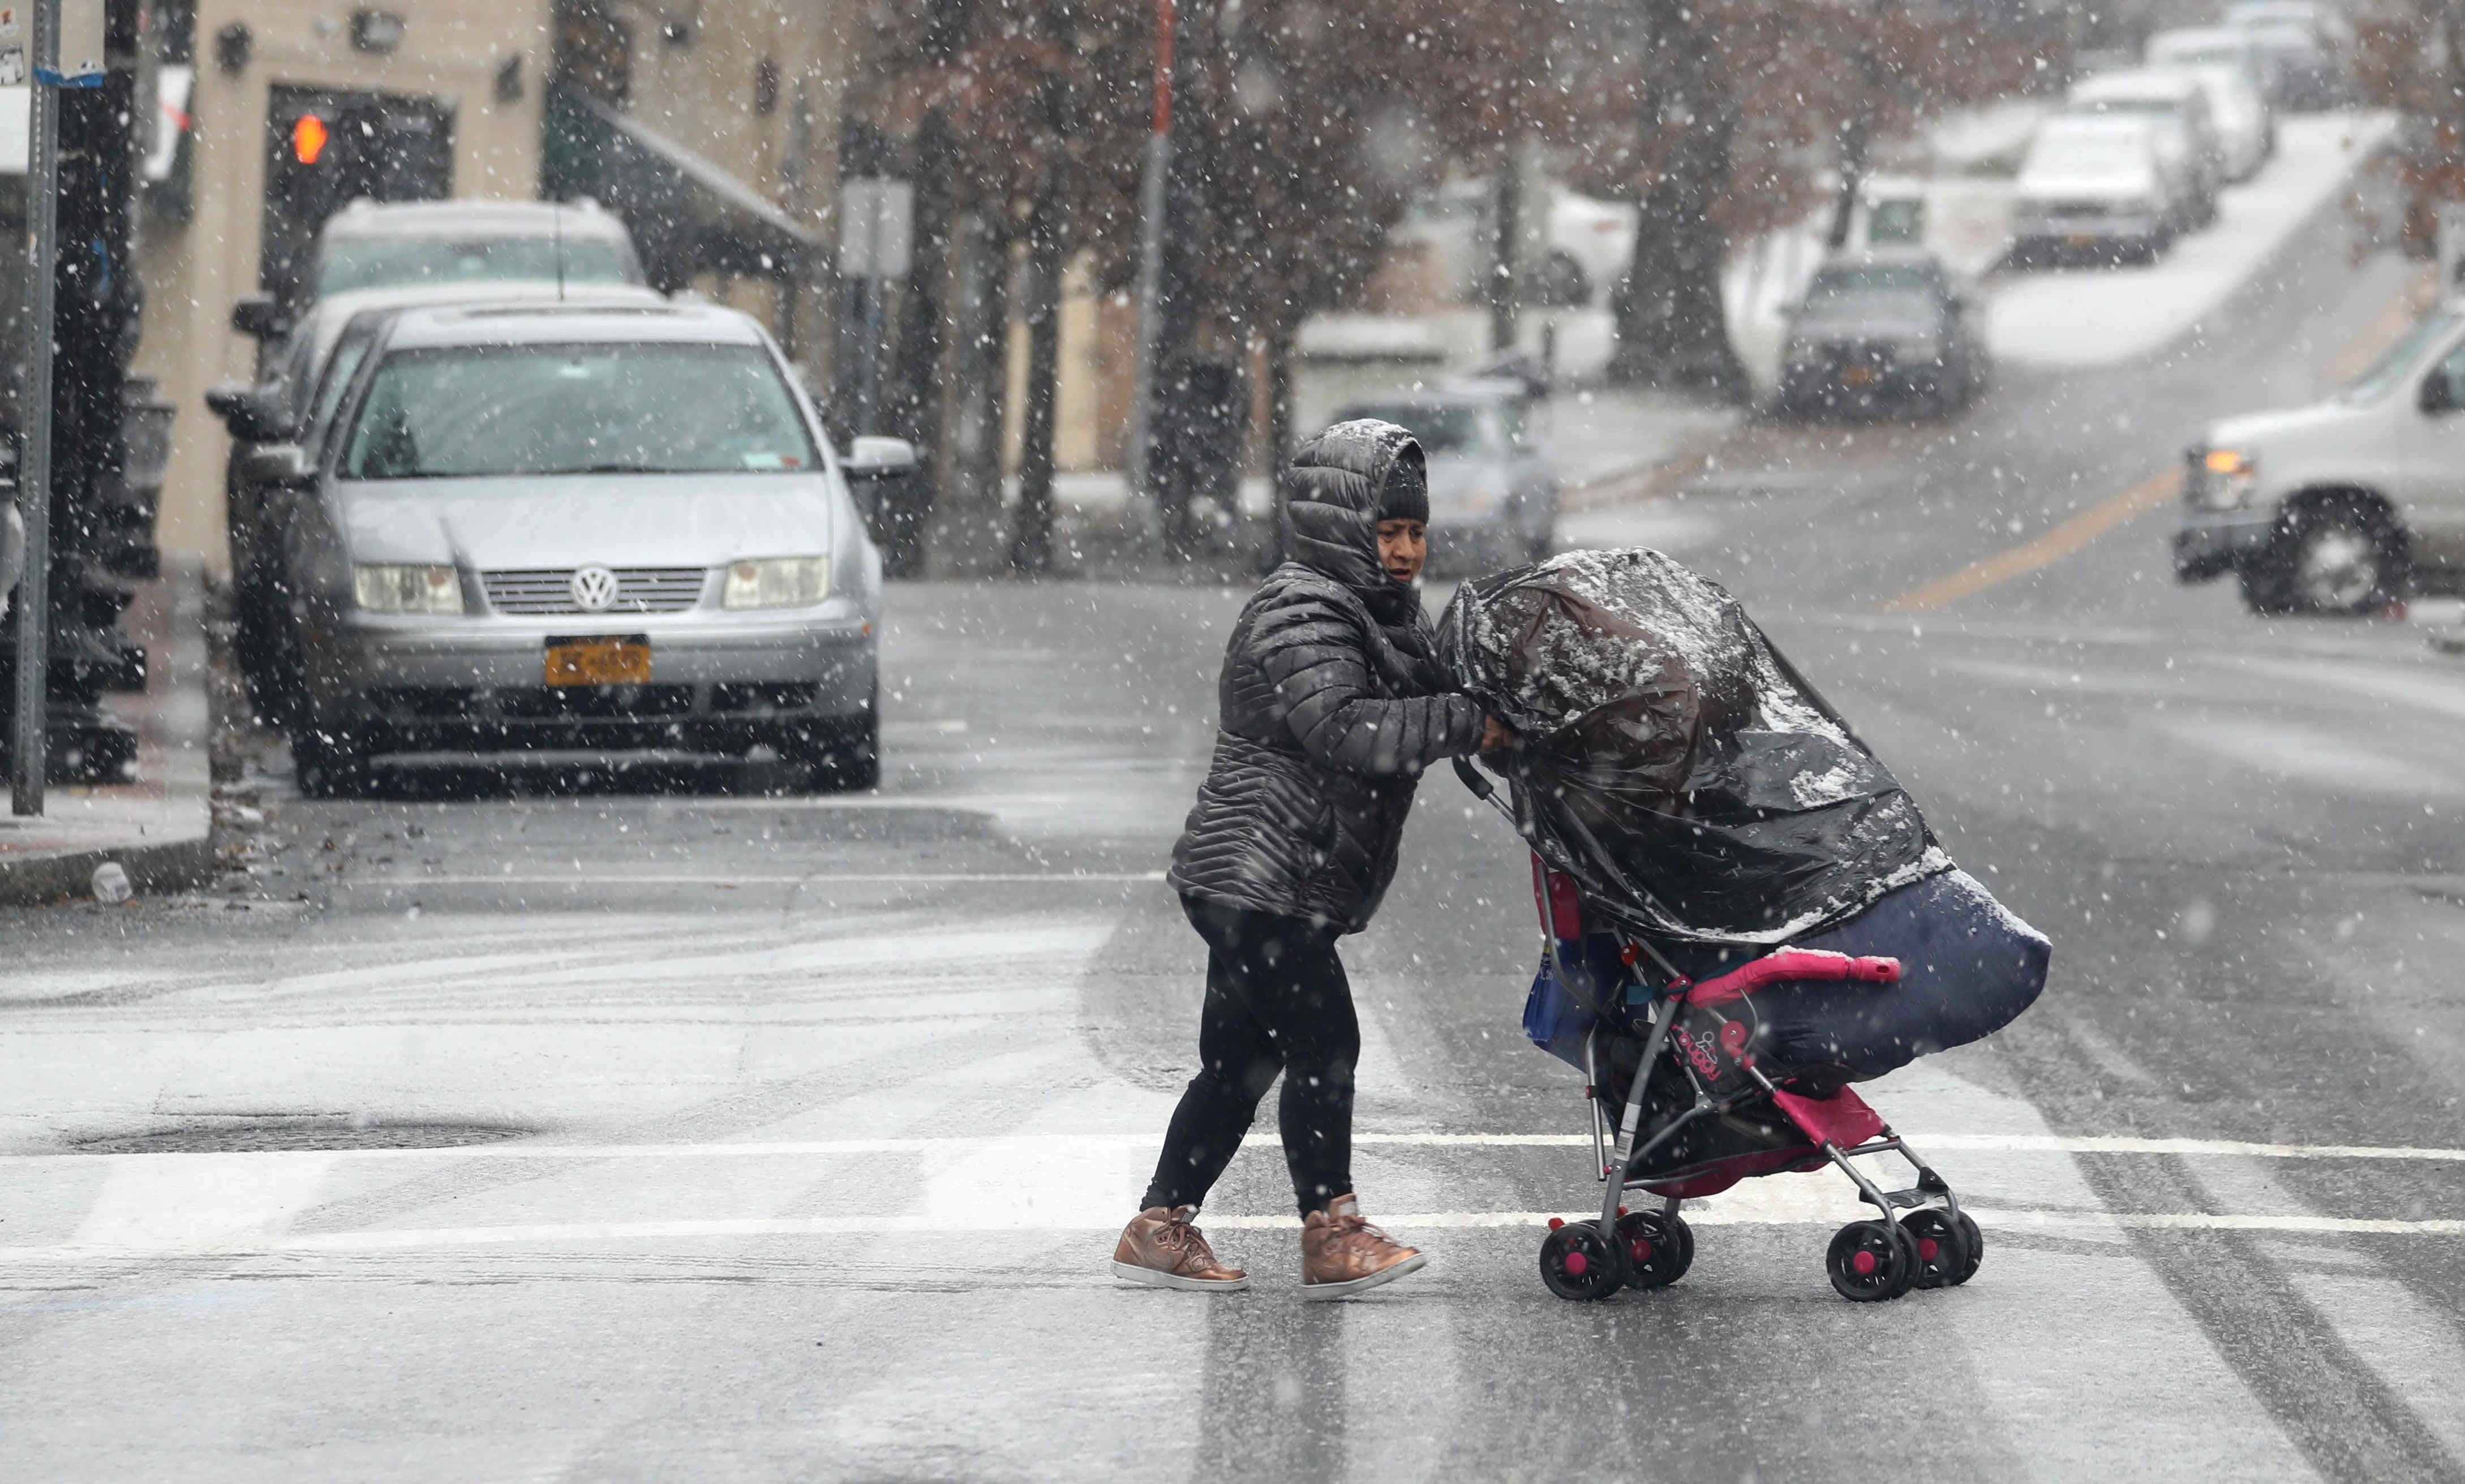 Are you shoveling your snow wrong? Here's what you need to know to stay safe this winter